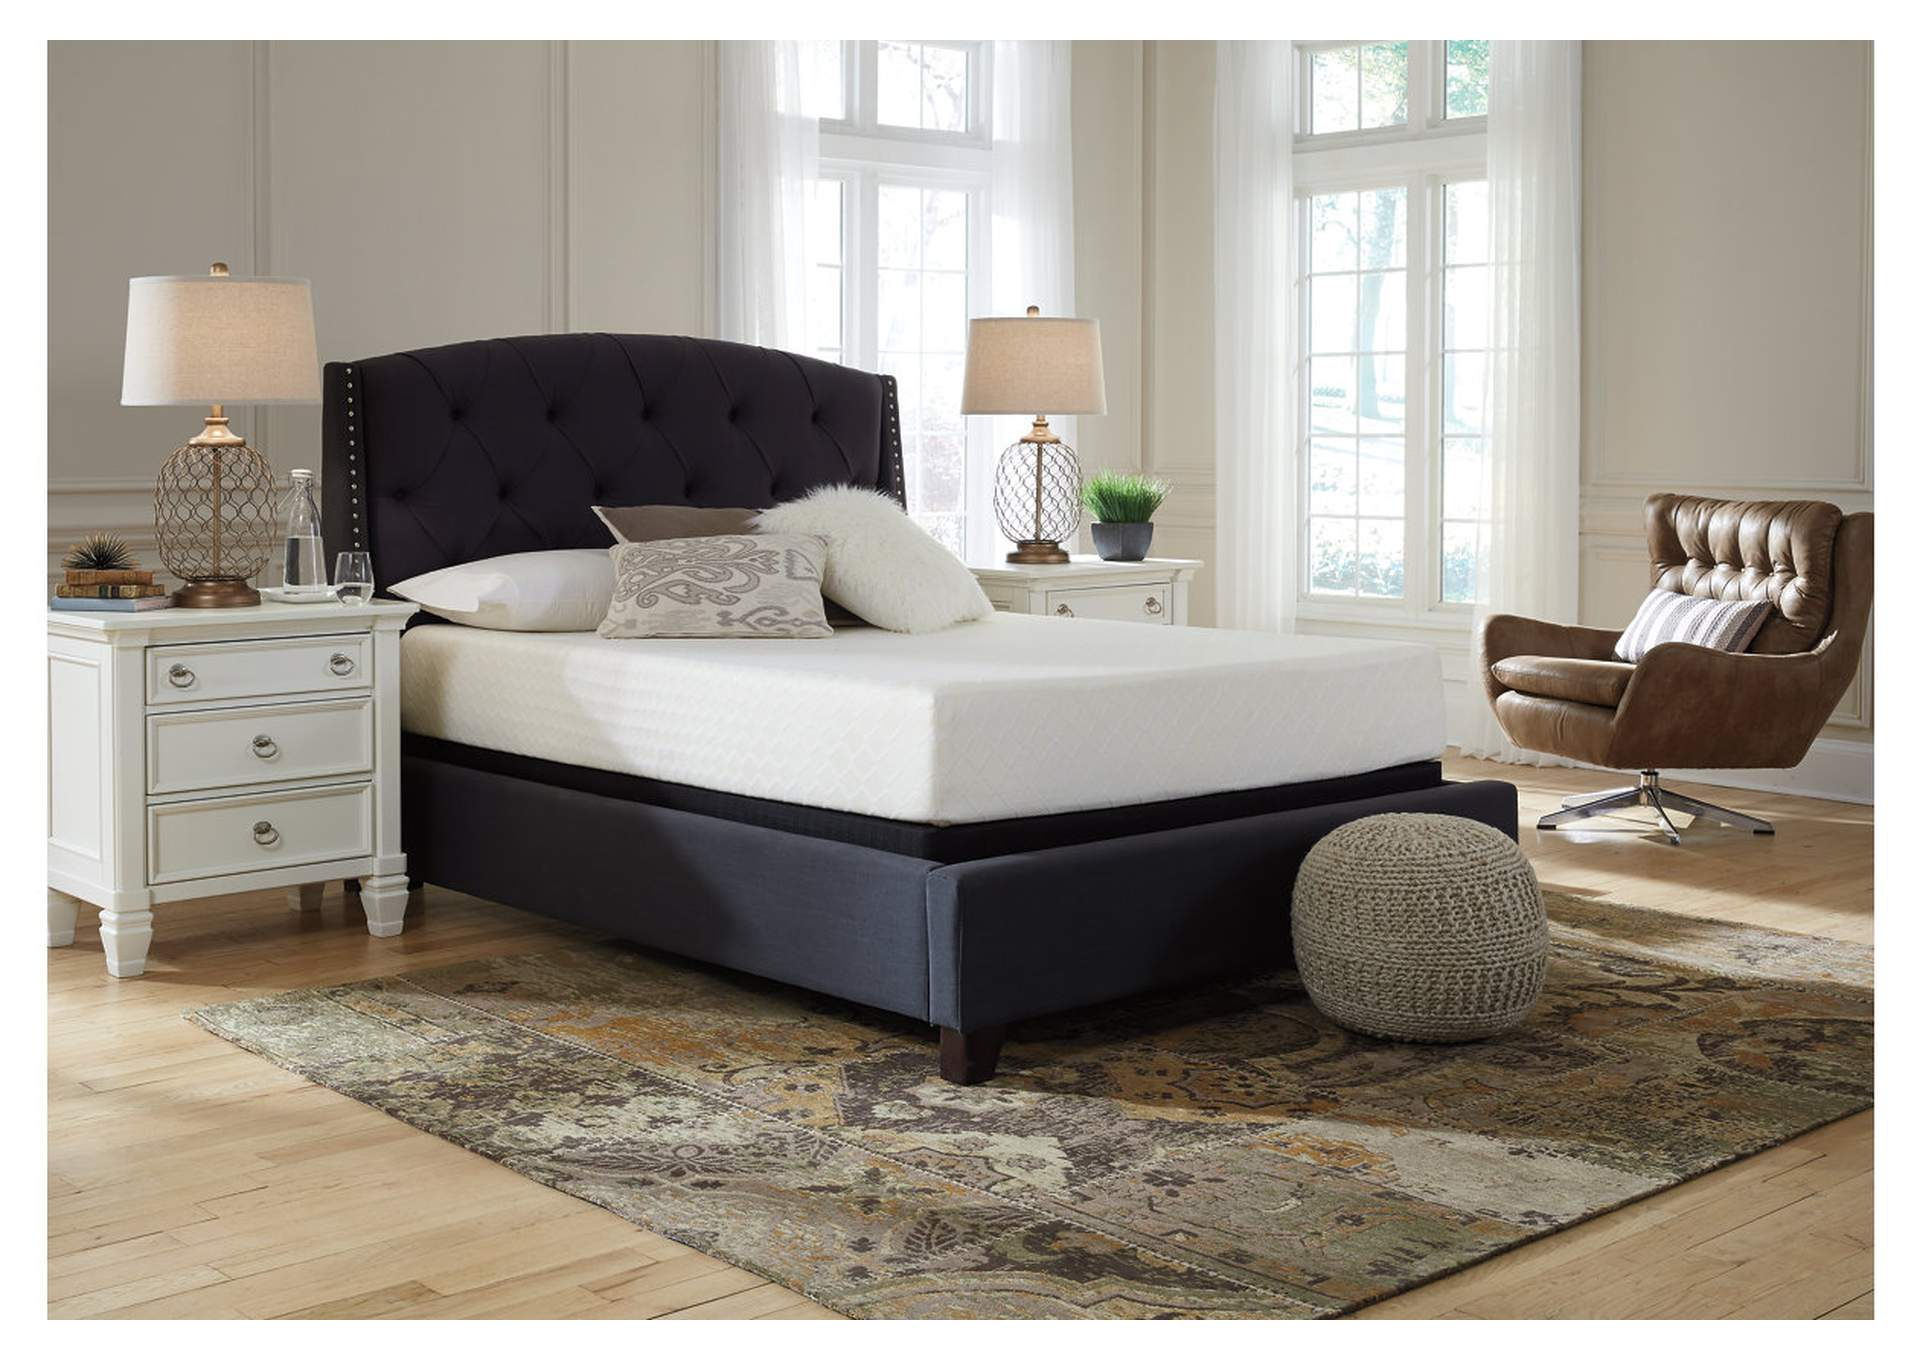 "Chime 10"" Memory Foam Full Mattress,Sierra Sleep by Ashley"